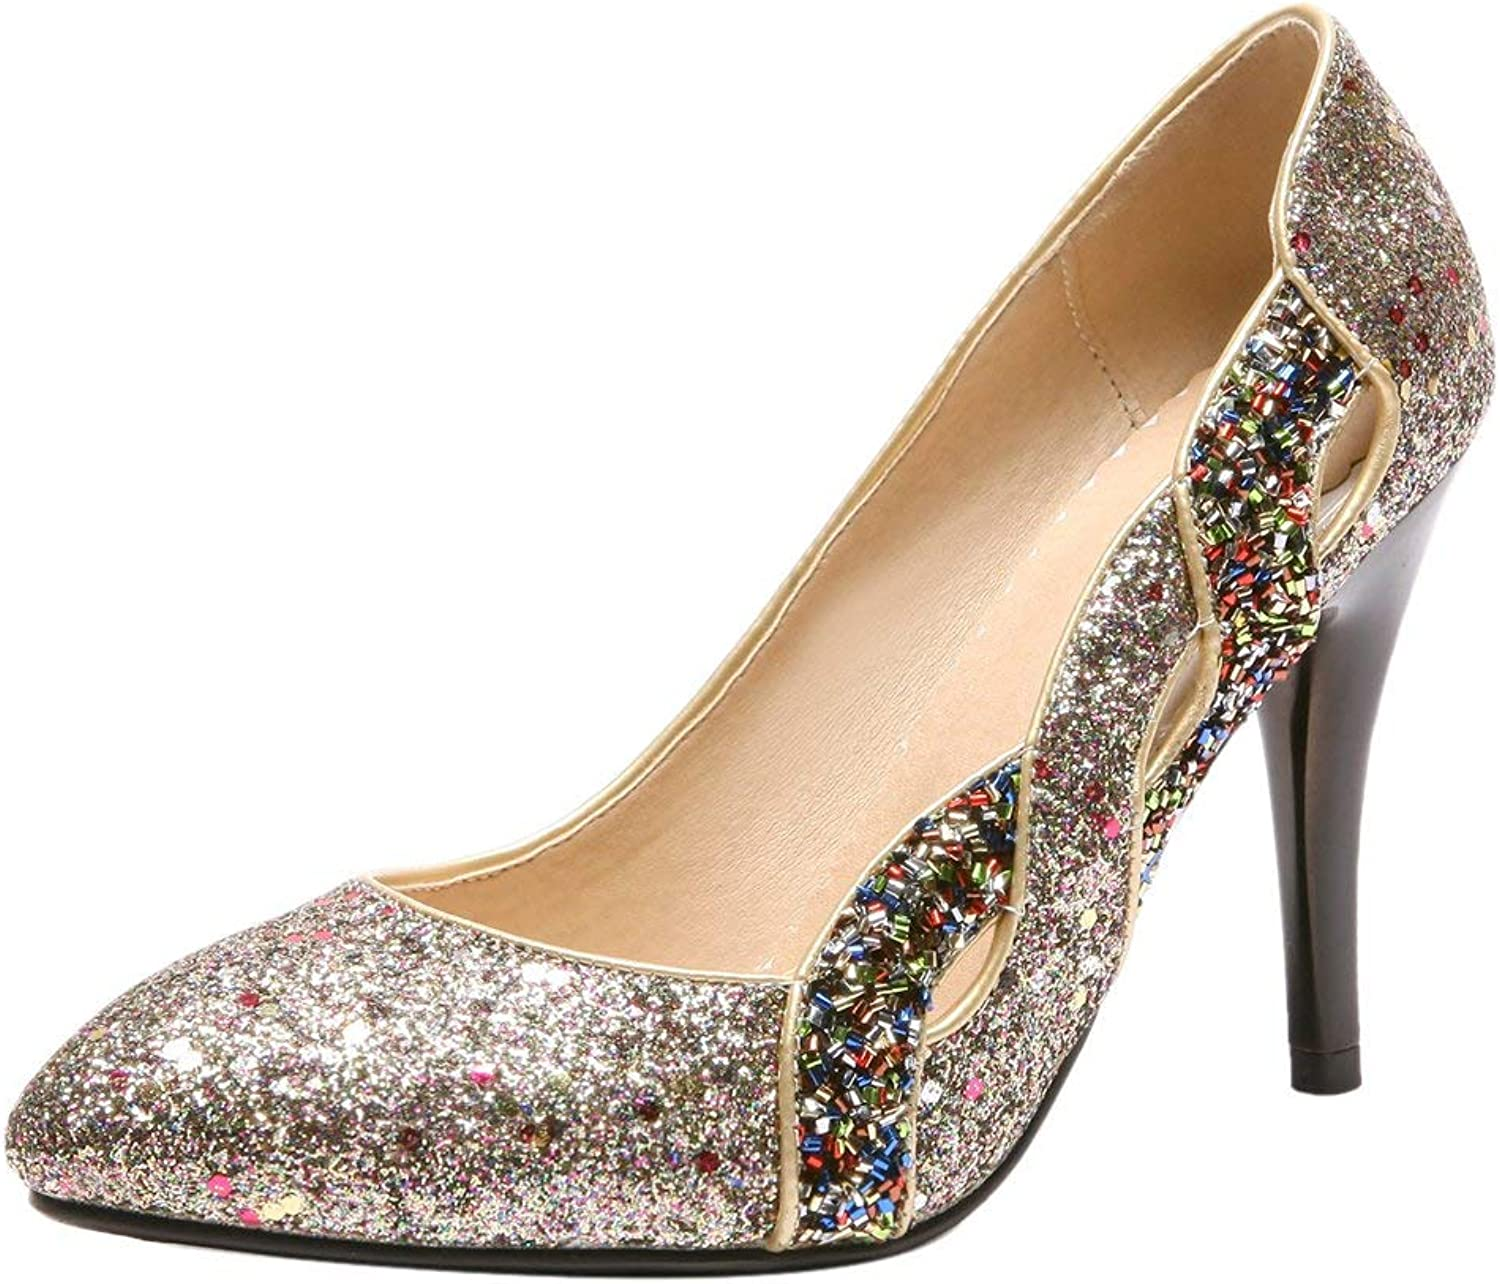 Unm Women Fashion High Heel Pumps